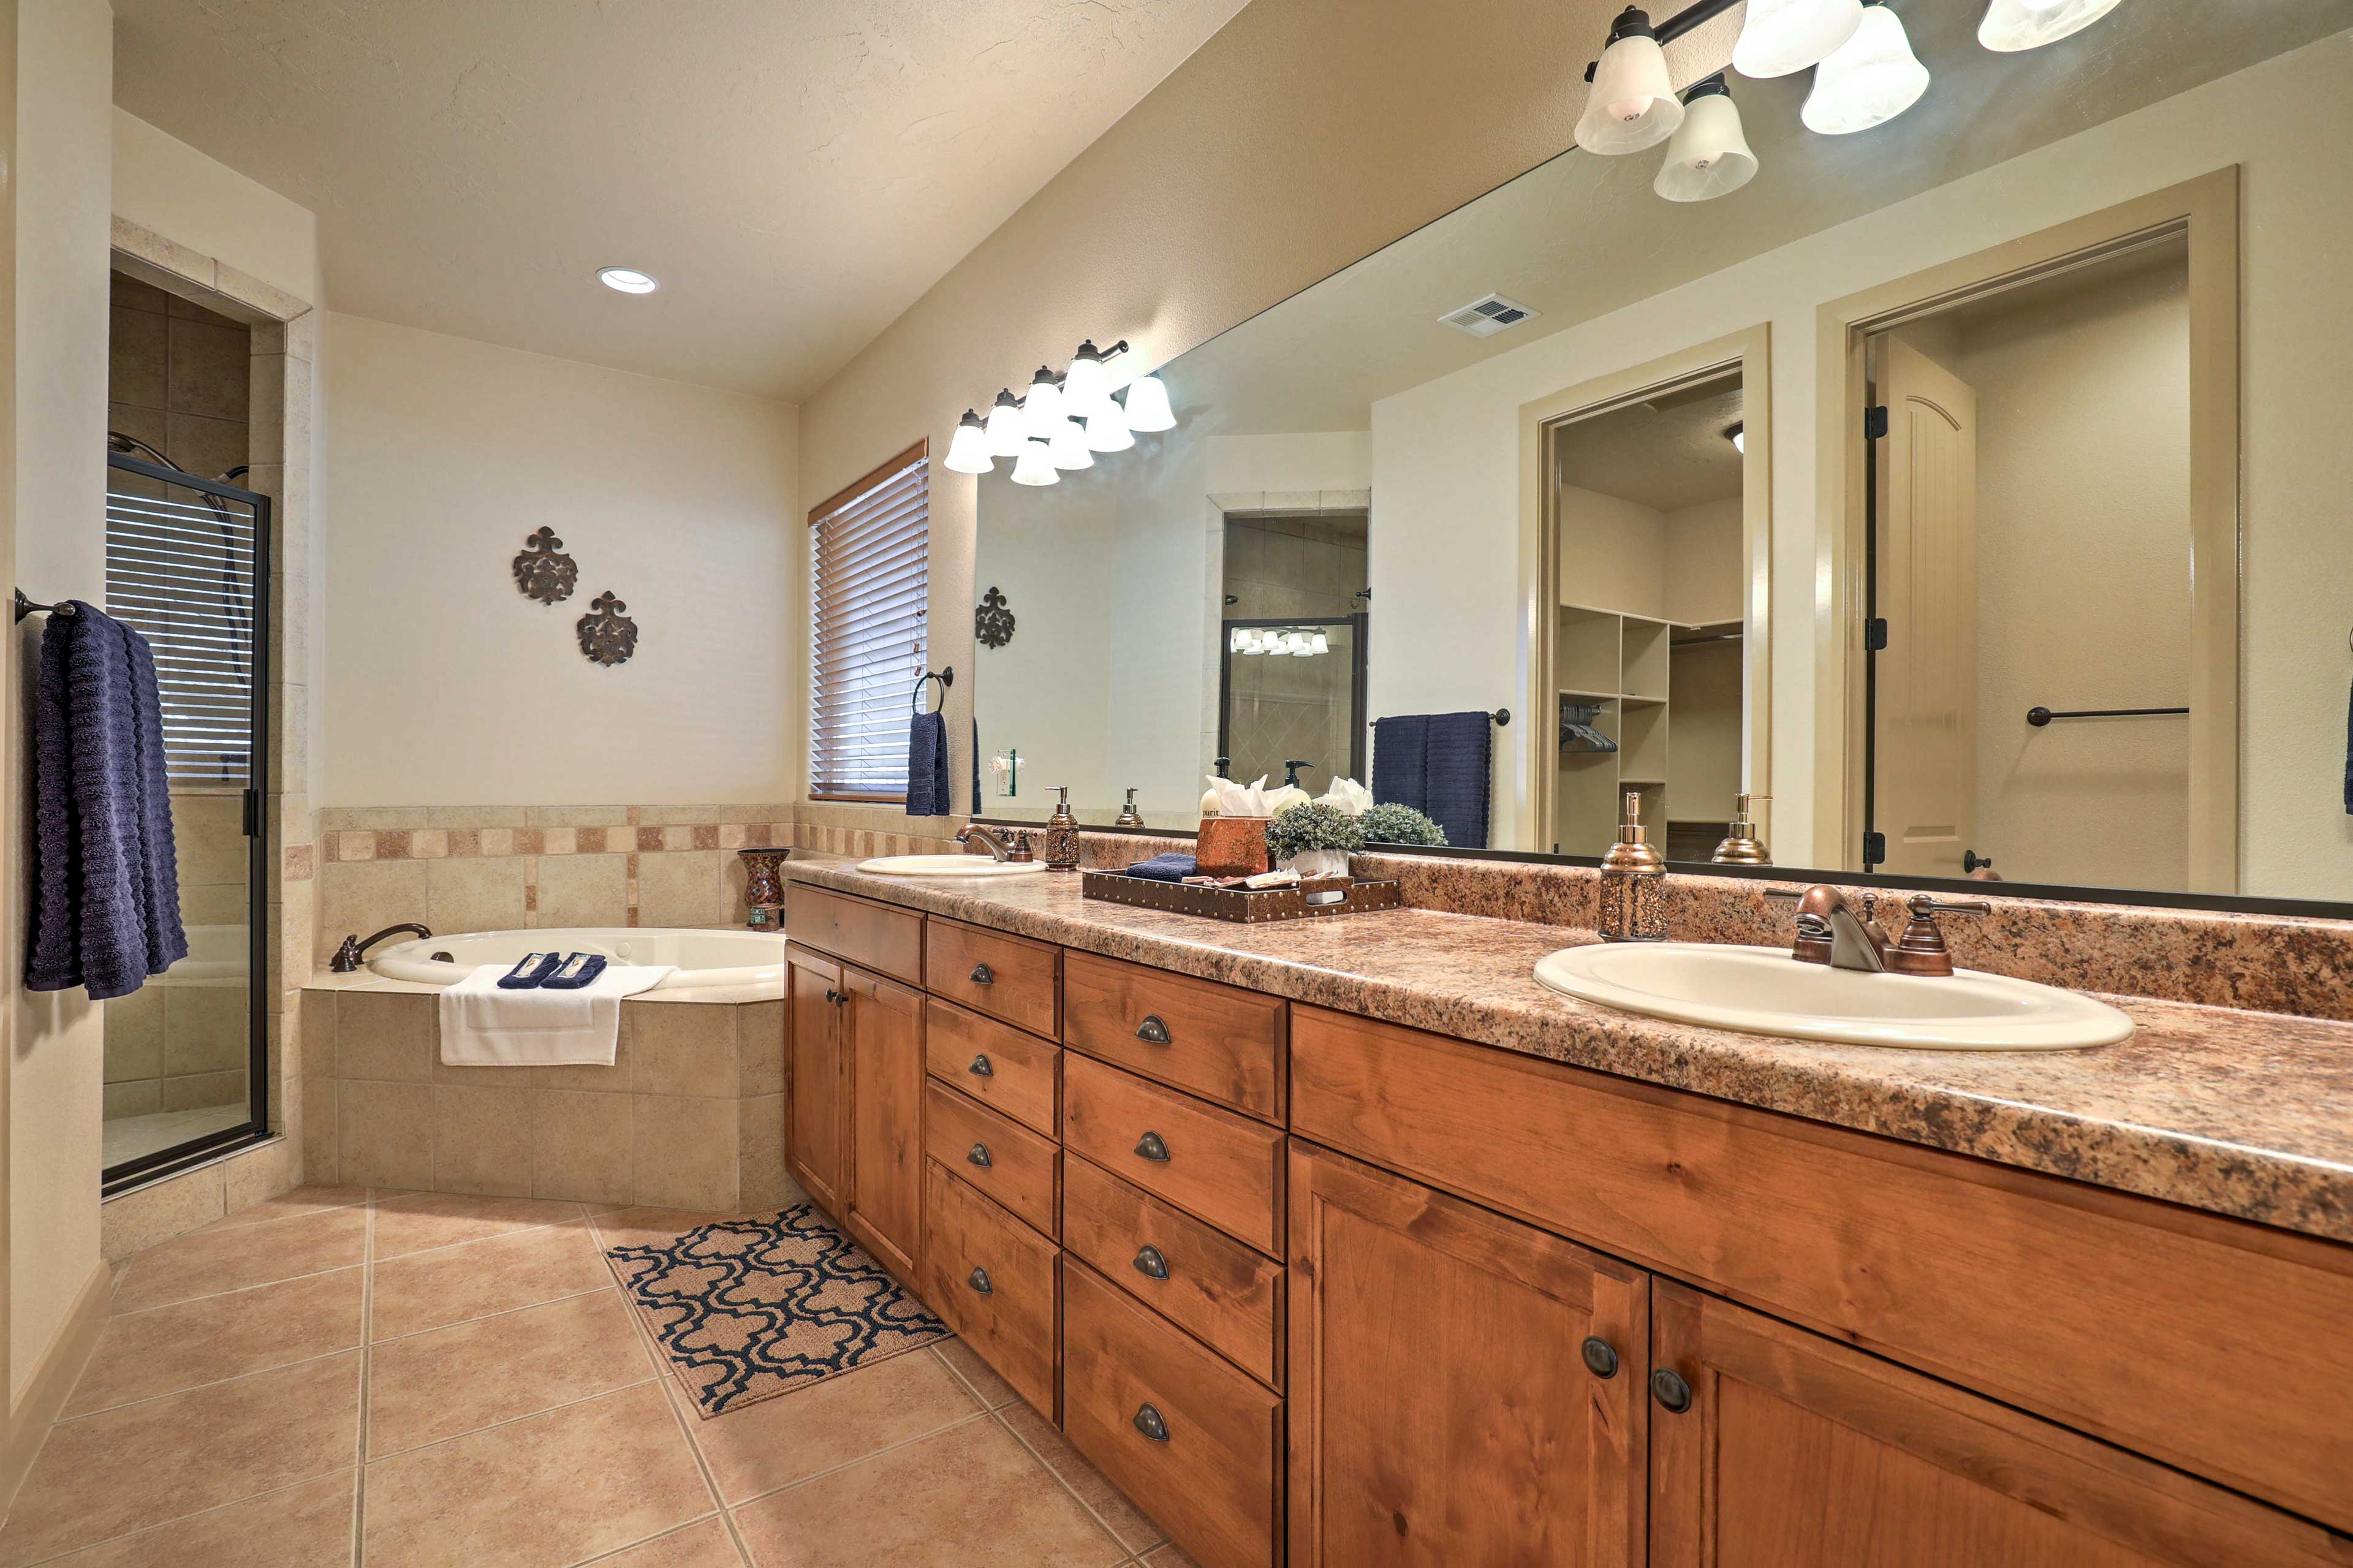 Find a walk-in shower and soaking tub in the en-suite bathroom.